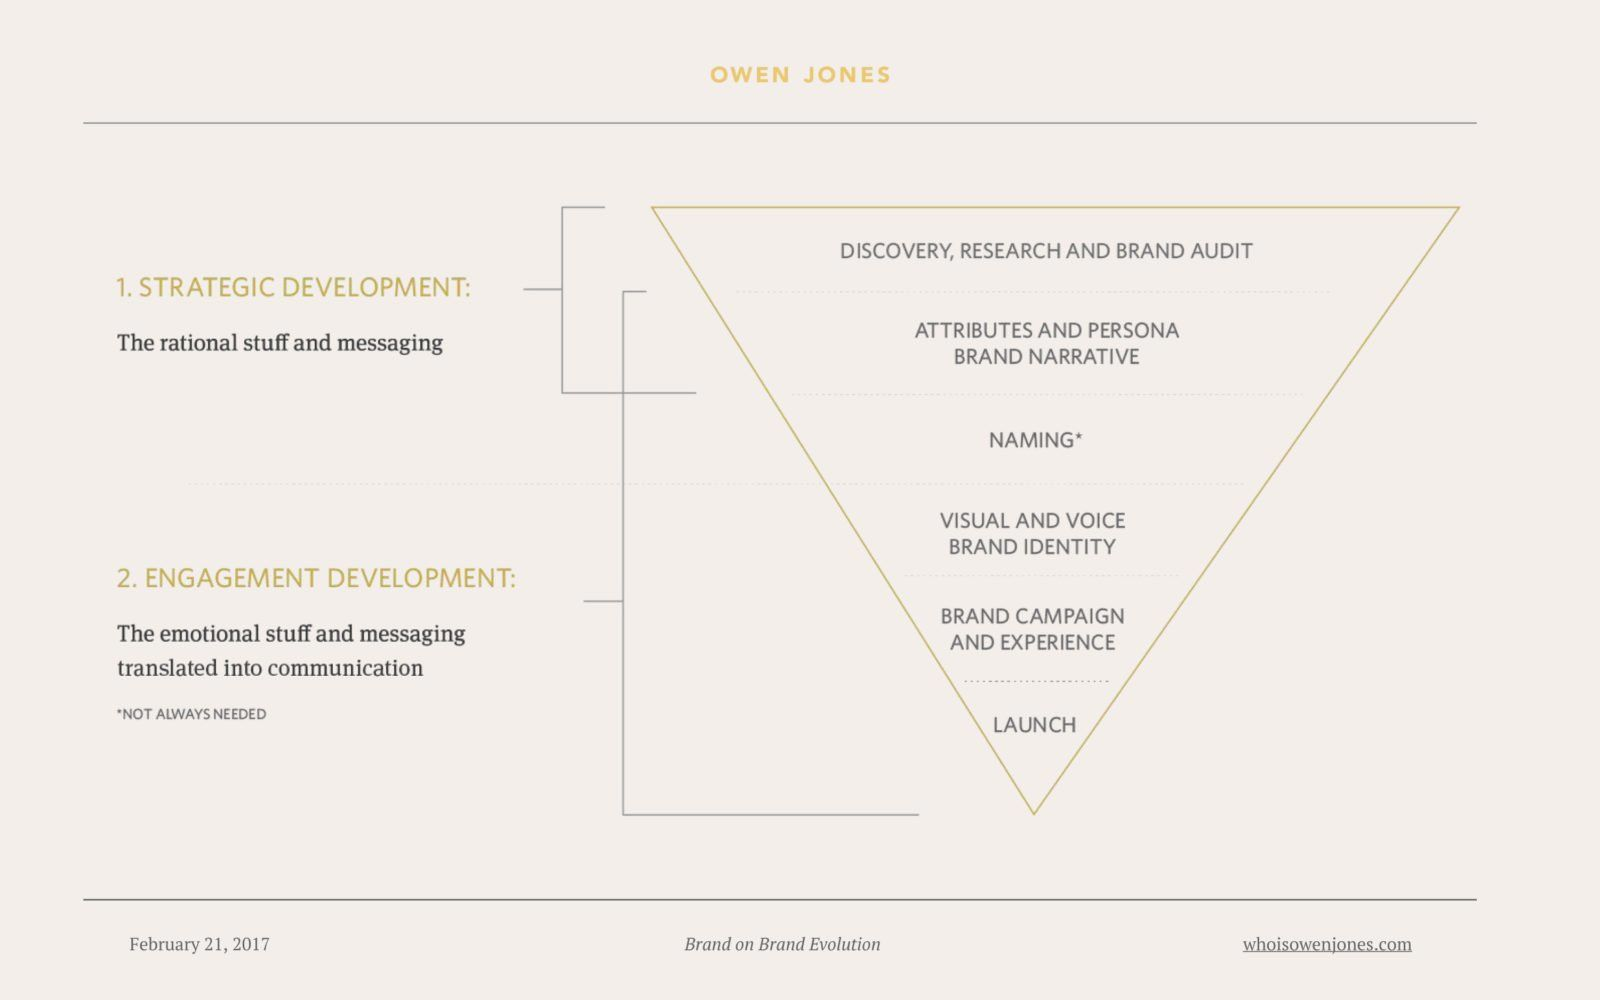 Smart tips for a successful branding journey - Pam Didner